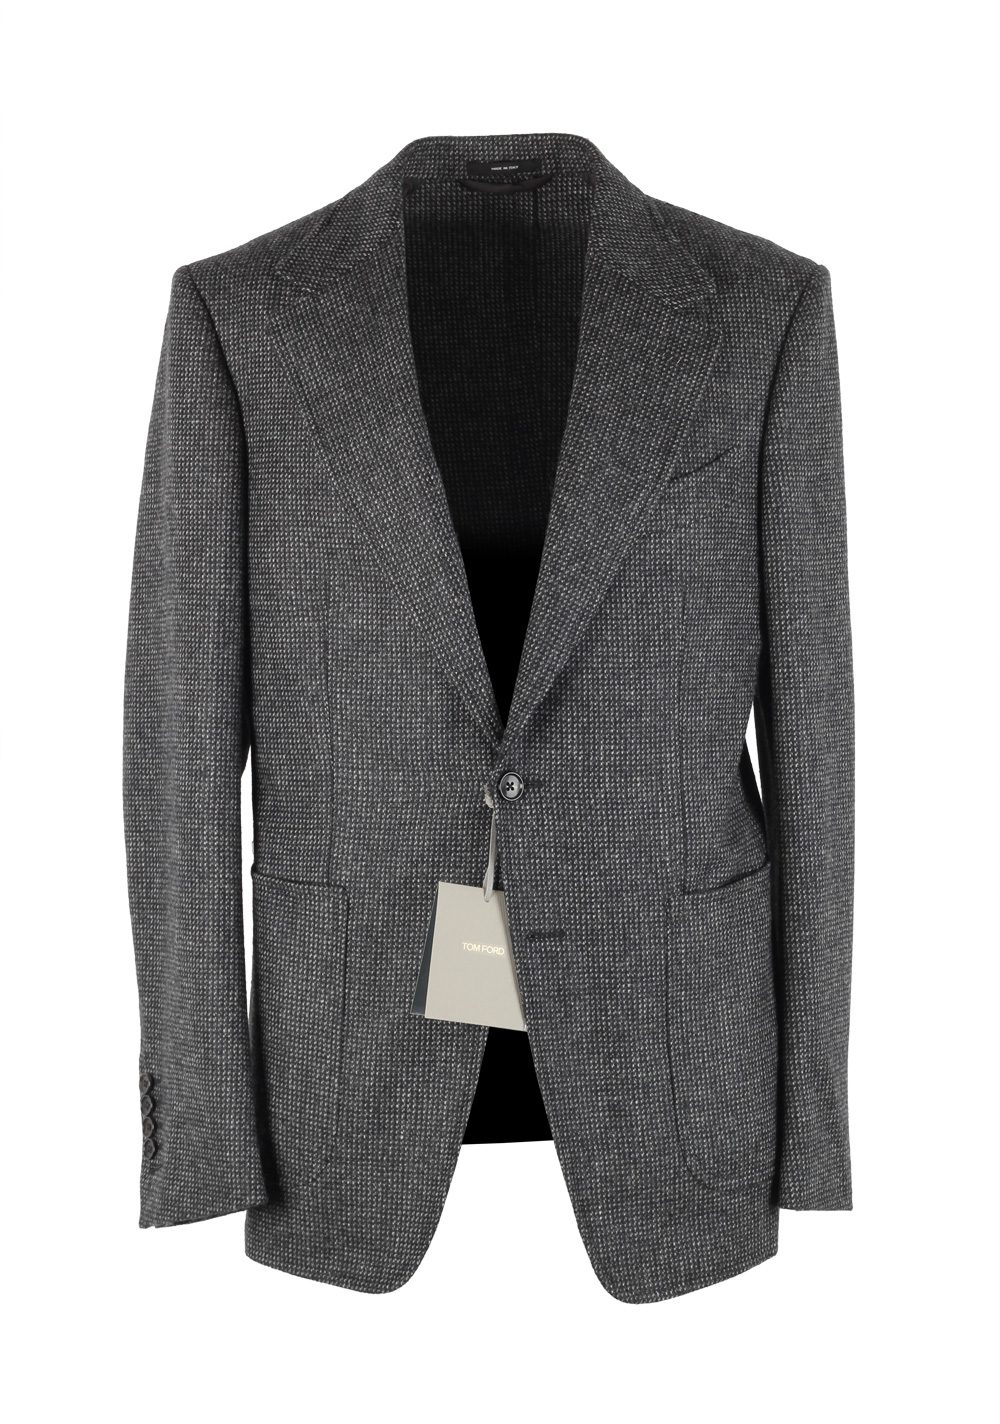 TOM FORD Shelton Gray Sport Coat Size 48 / 38R U.S. In Wool | Costume Limité